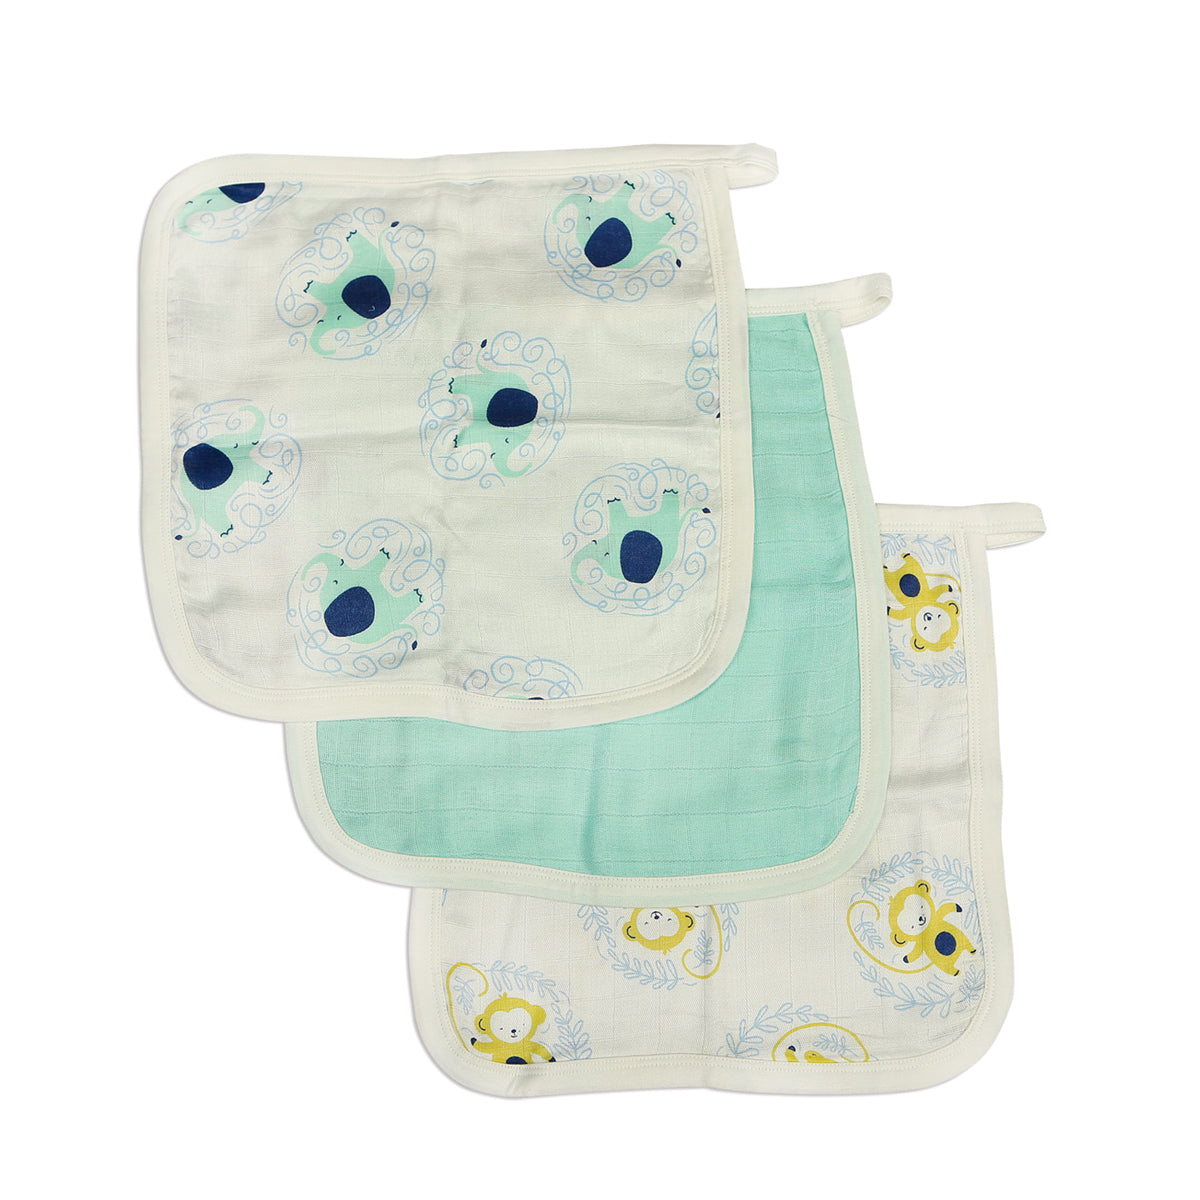 Bamboo Muslin Washcloth Set (3 pack) - Elephant Print, Tropical Mint and Monkey Print